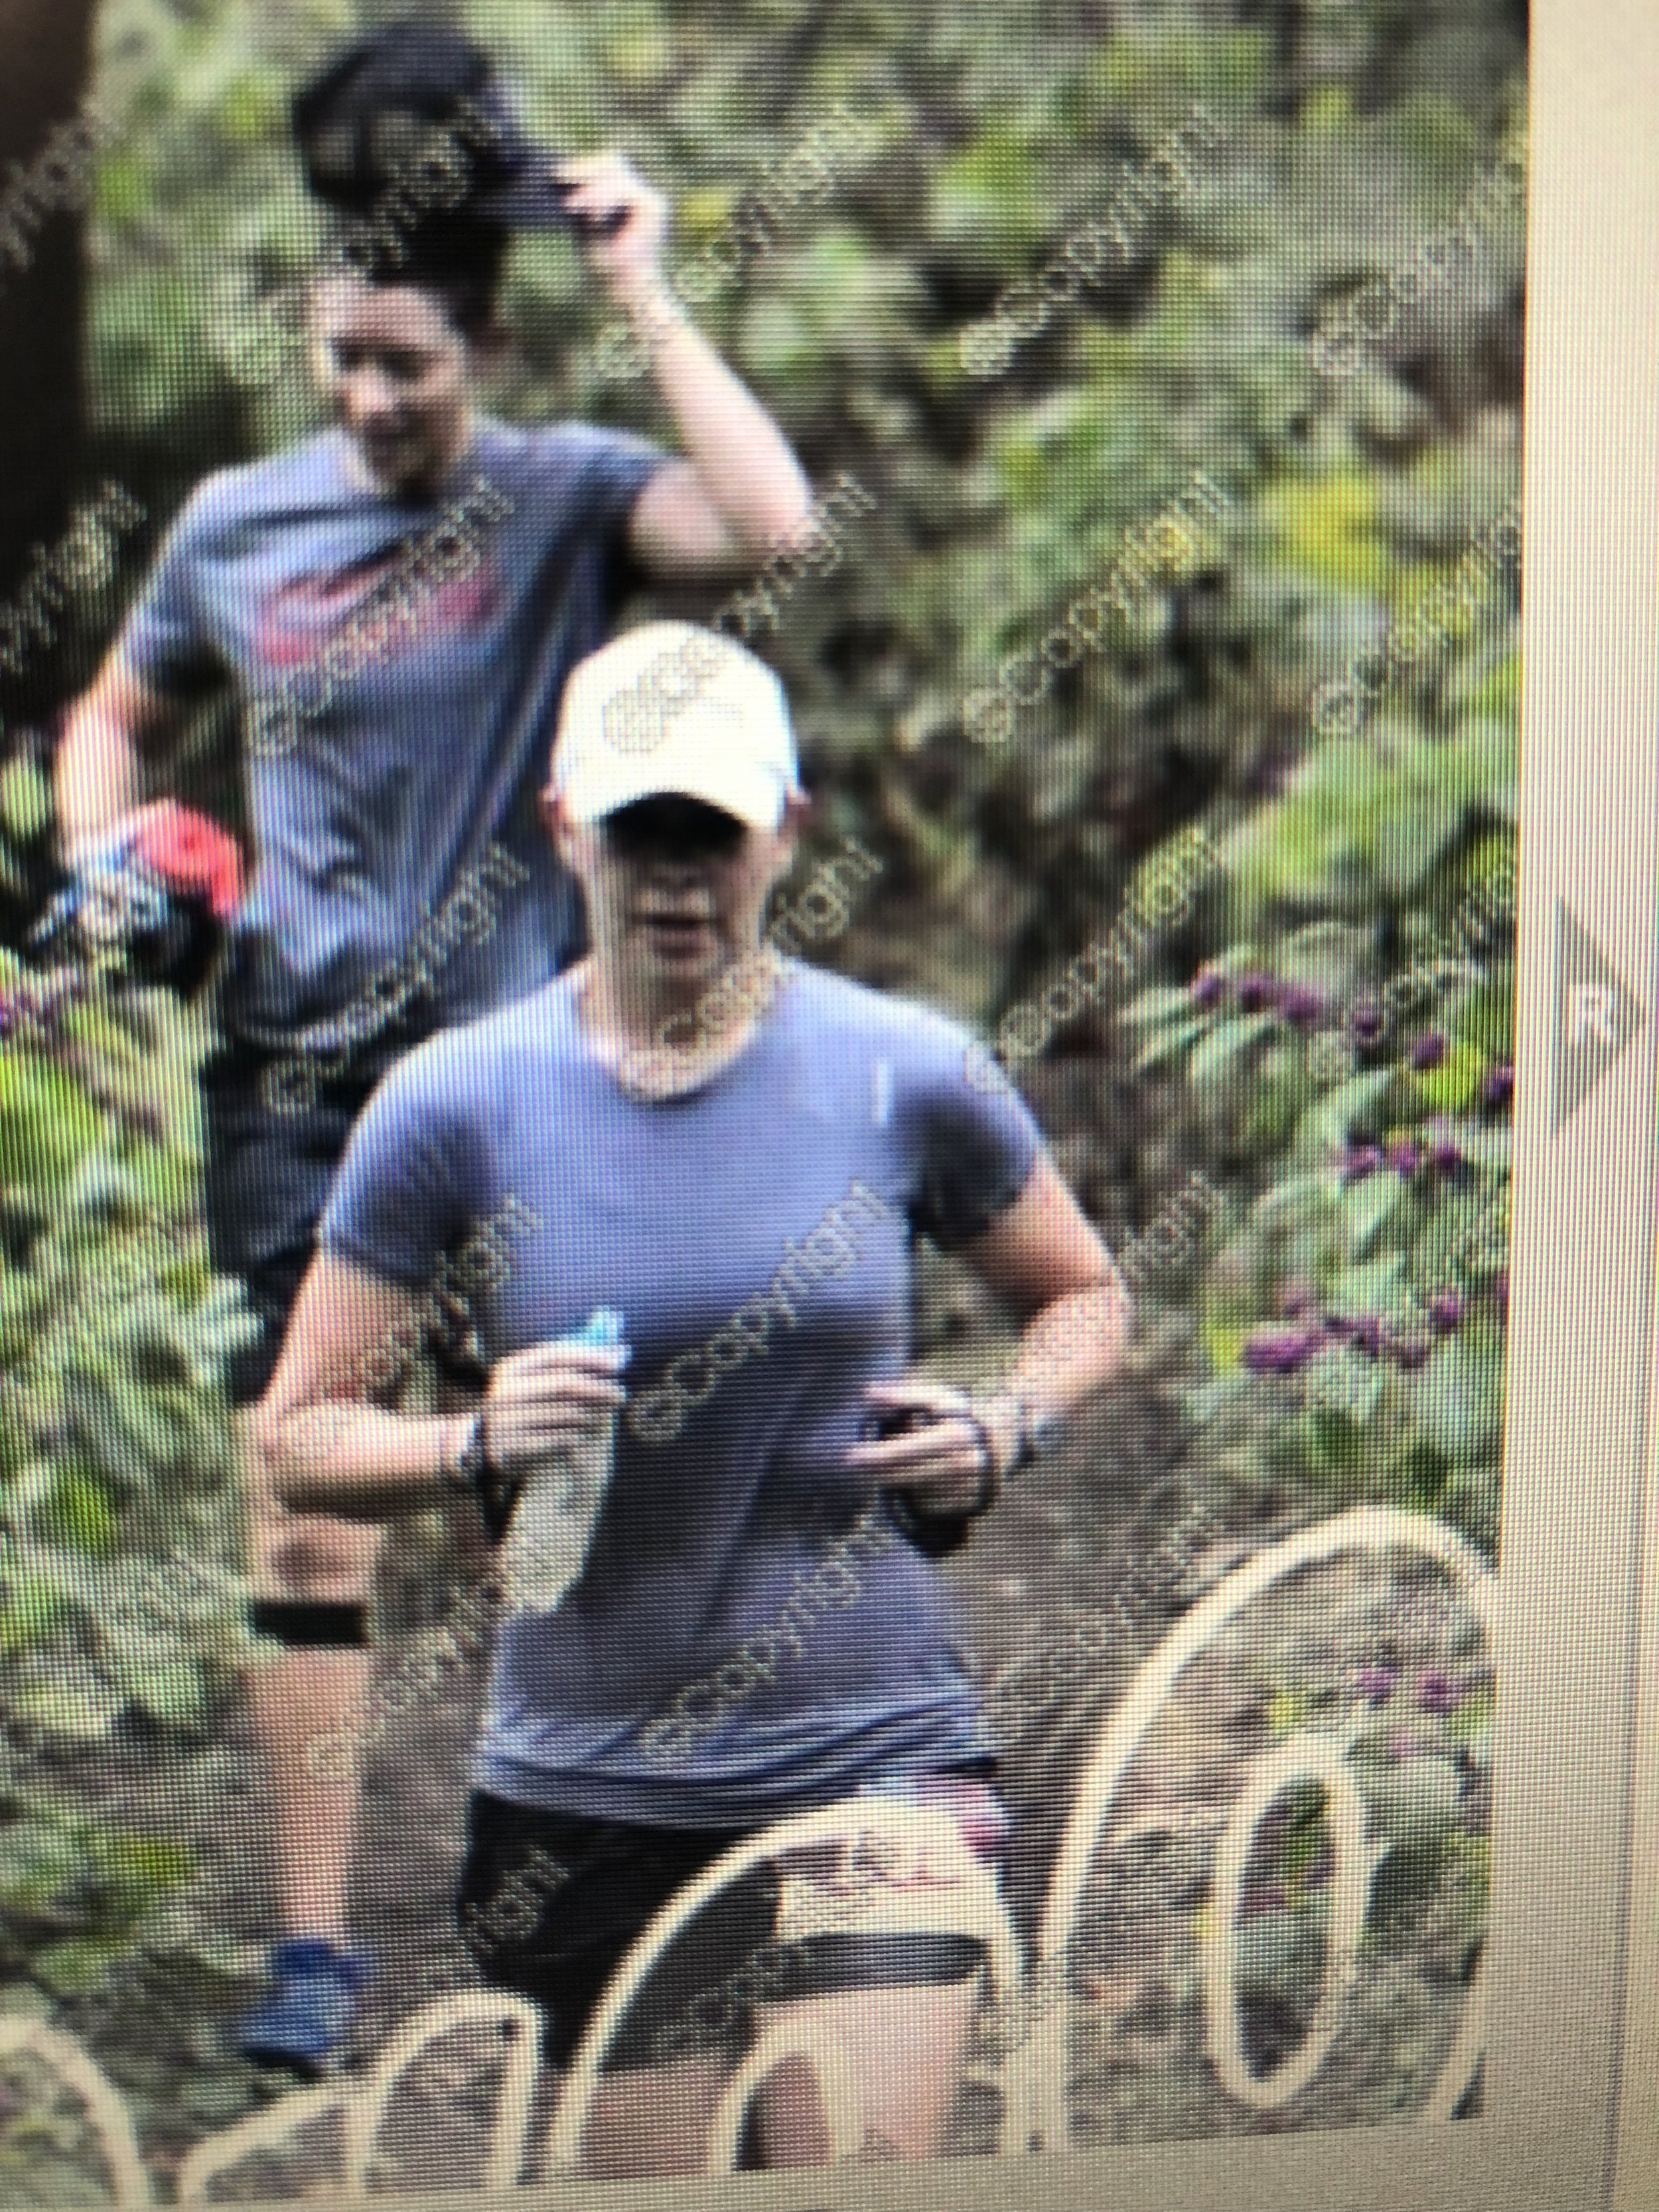 Megan and I finishing up a loop at the 100k - soaked to the bone